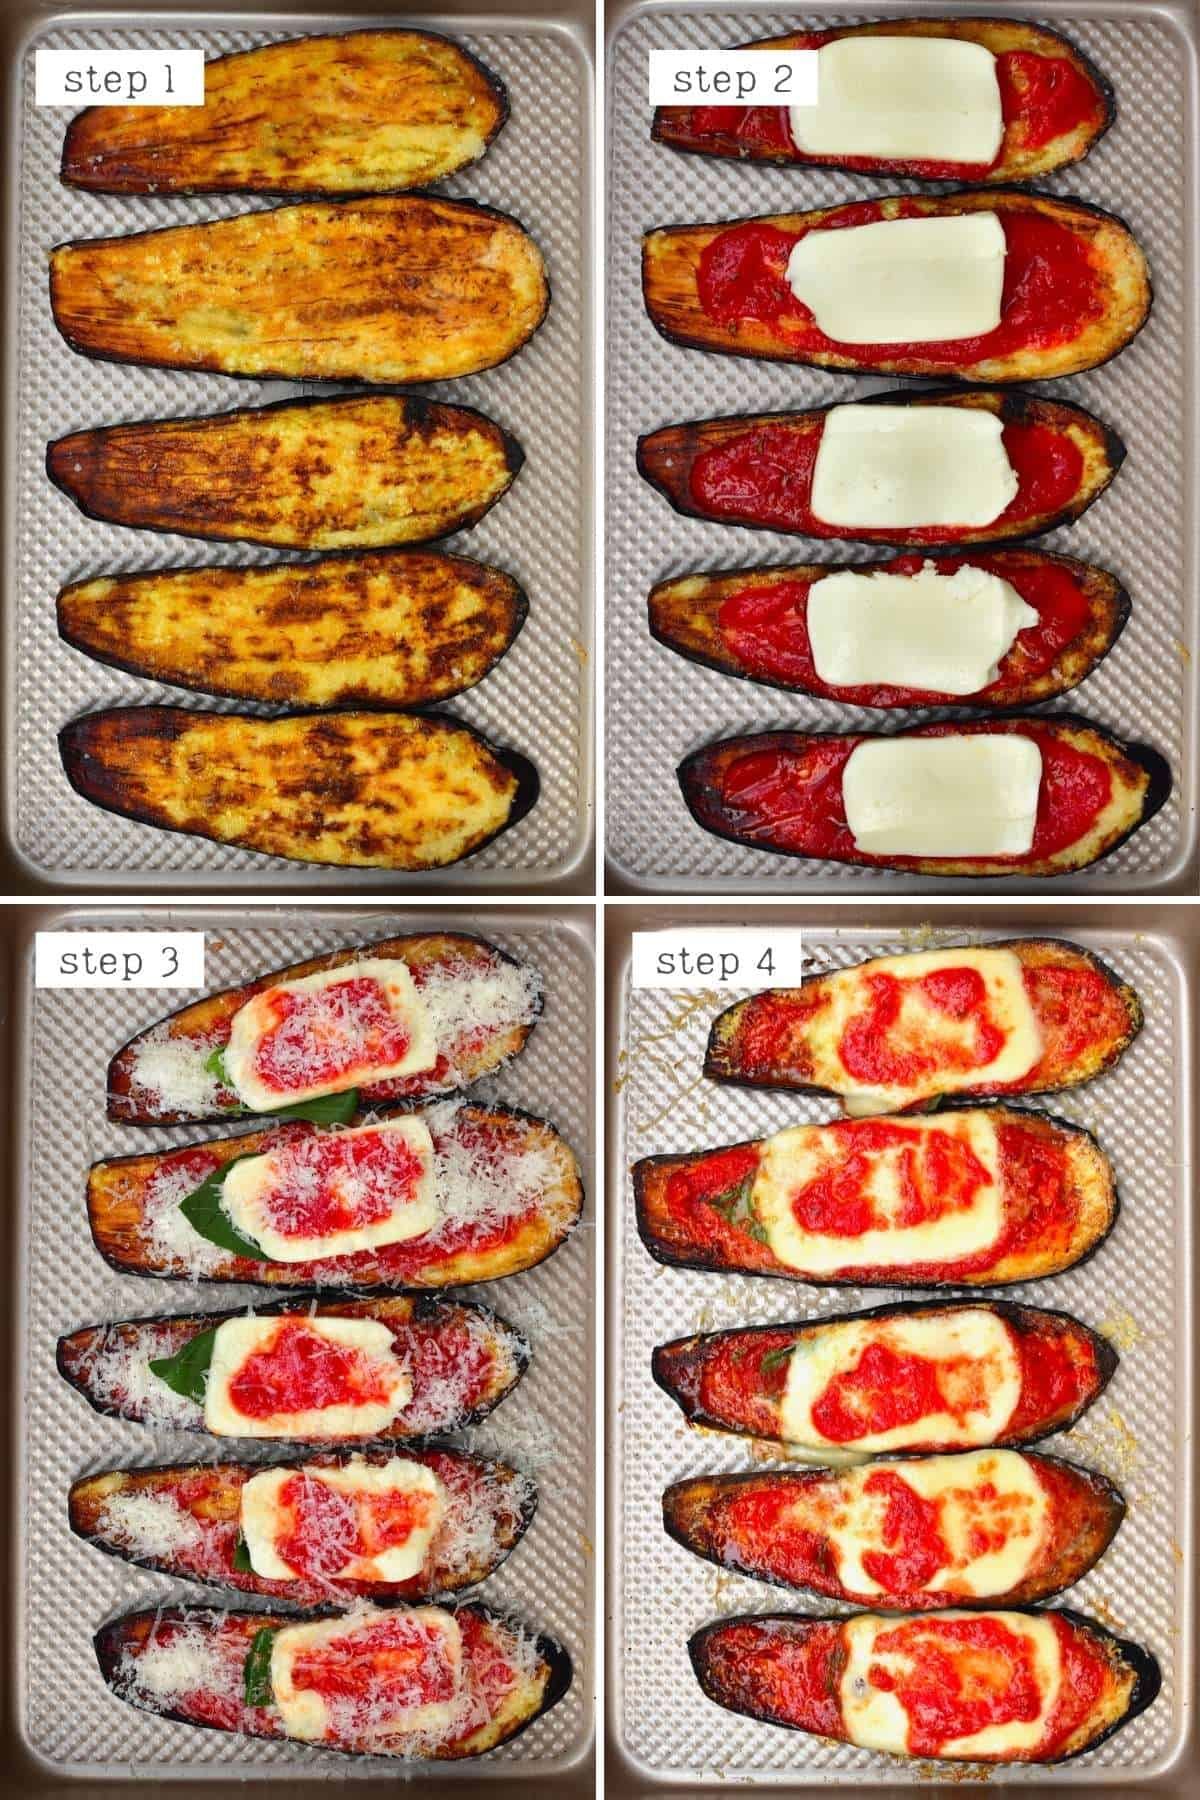 Steps for cooking simple parmigiana